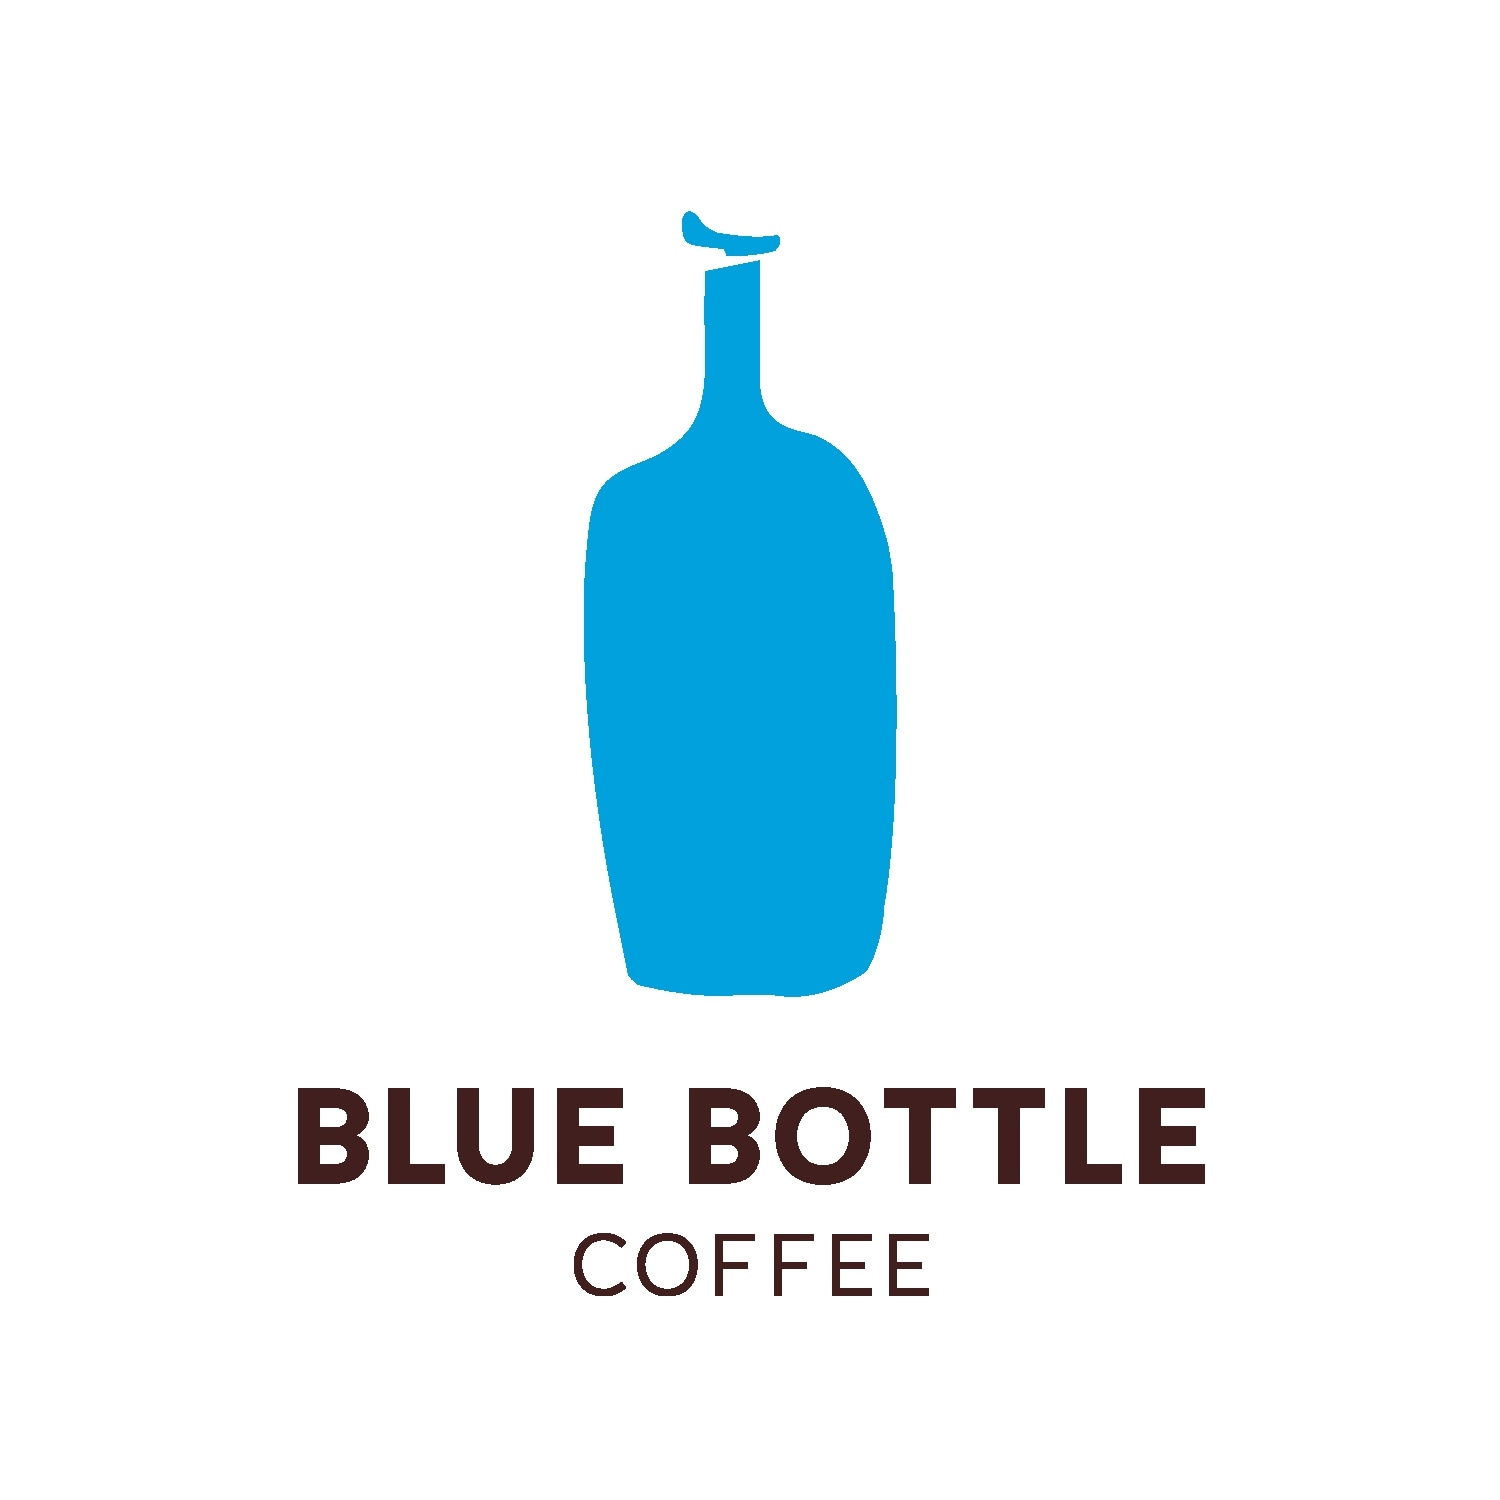 Shop bluebottlecoffee.com